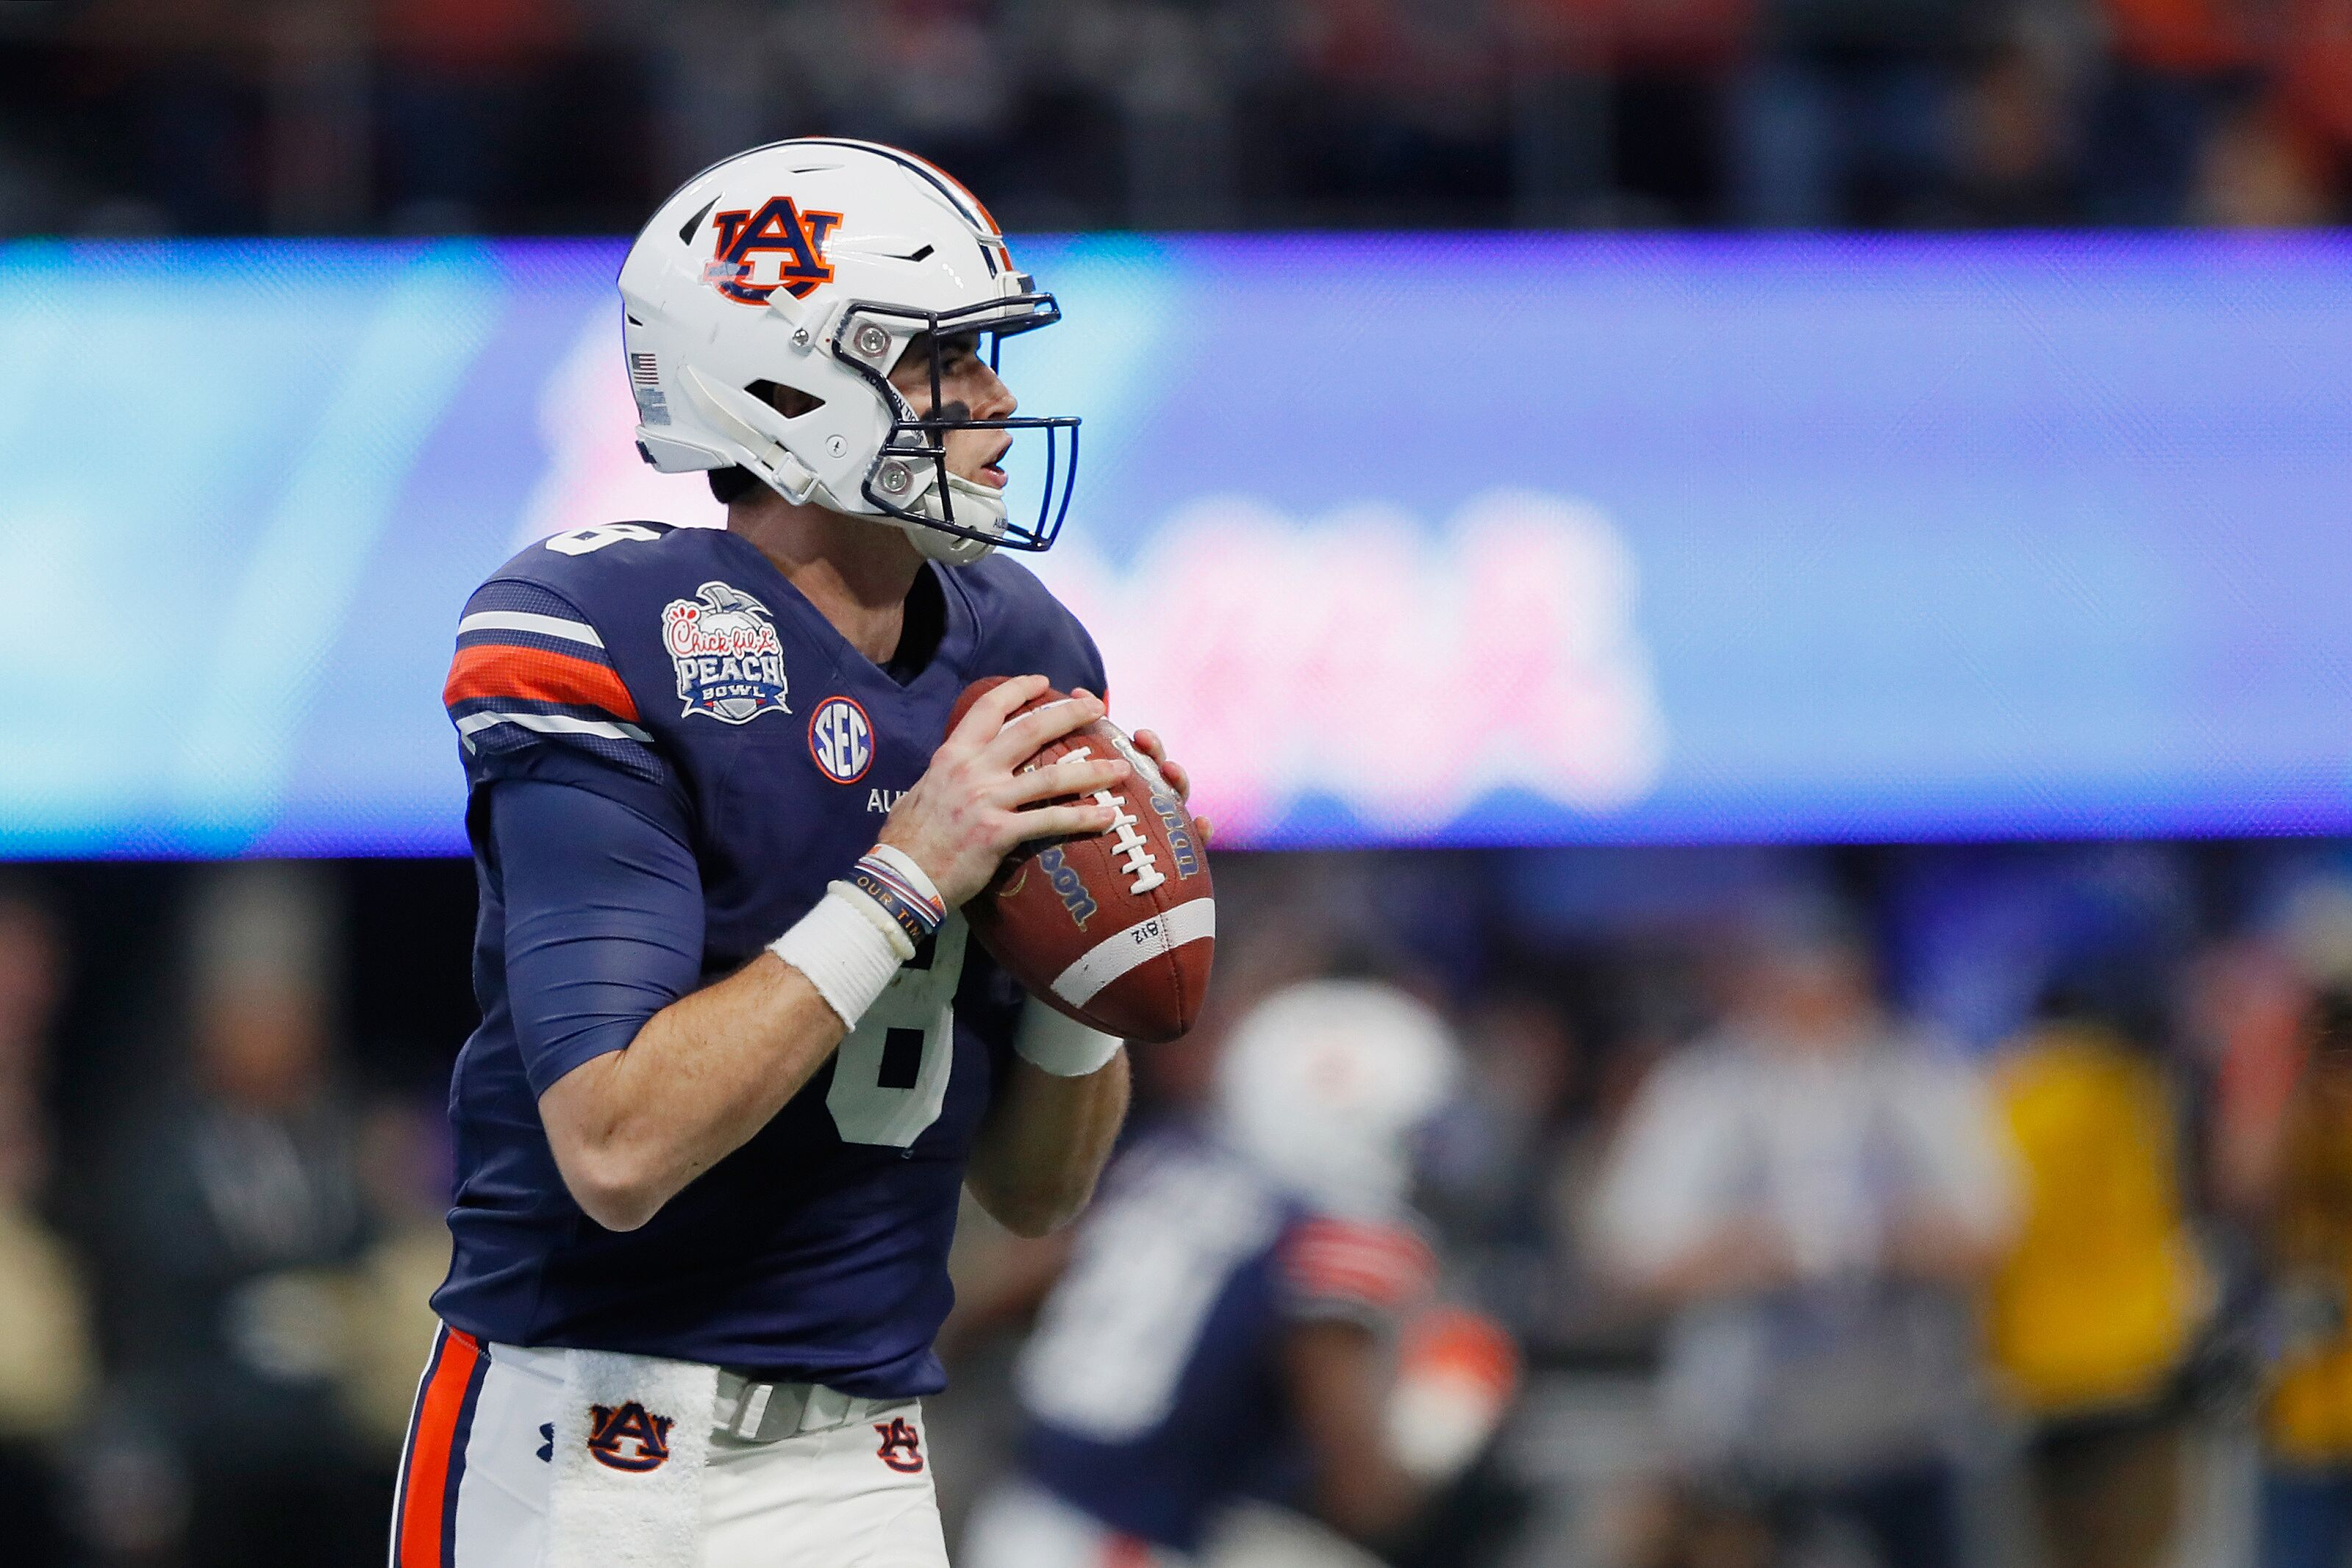 Auburn Depth Chart Yzing Key Pieces What It Means For Matchup Vs Washington